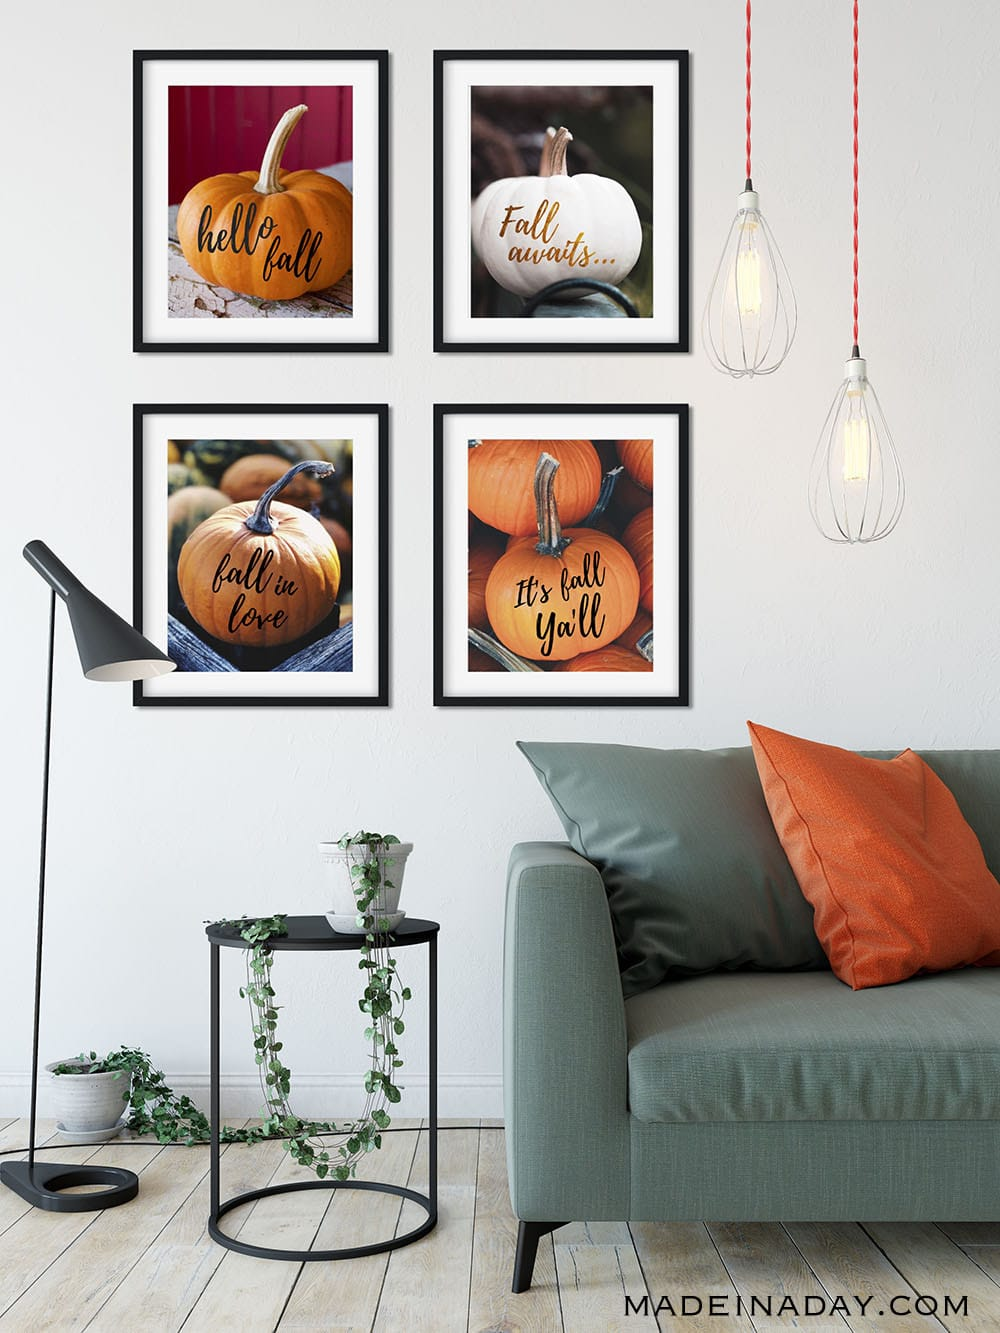 Fall wall art, fall pumpkin wall art, fall sayings wall art, fall quotes wall art